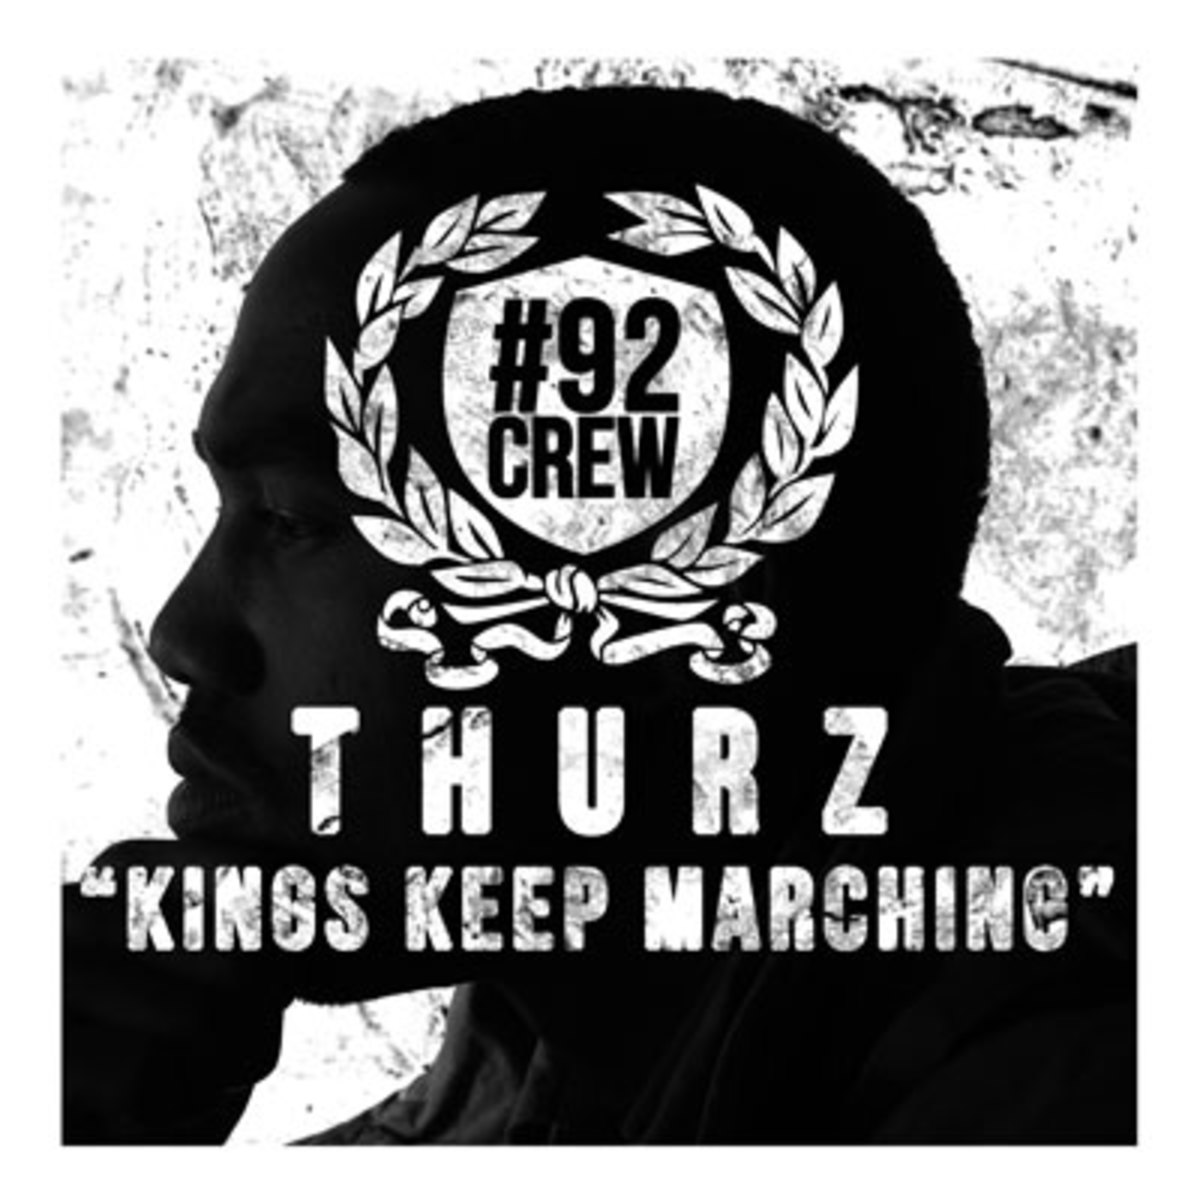 thurz-kingskeepmarching.jpg